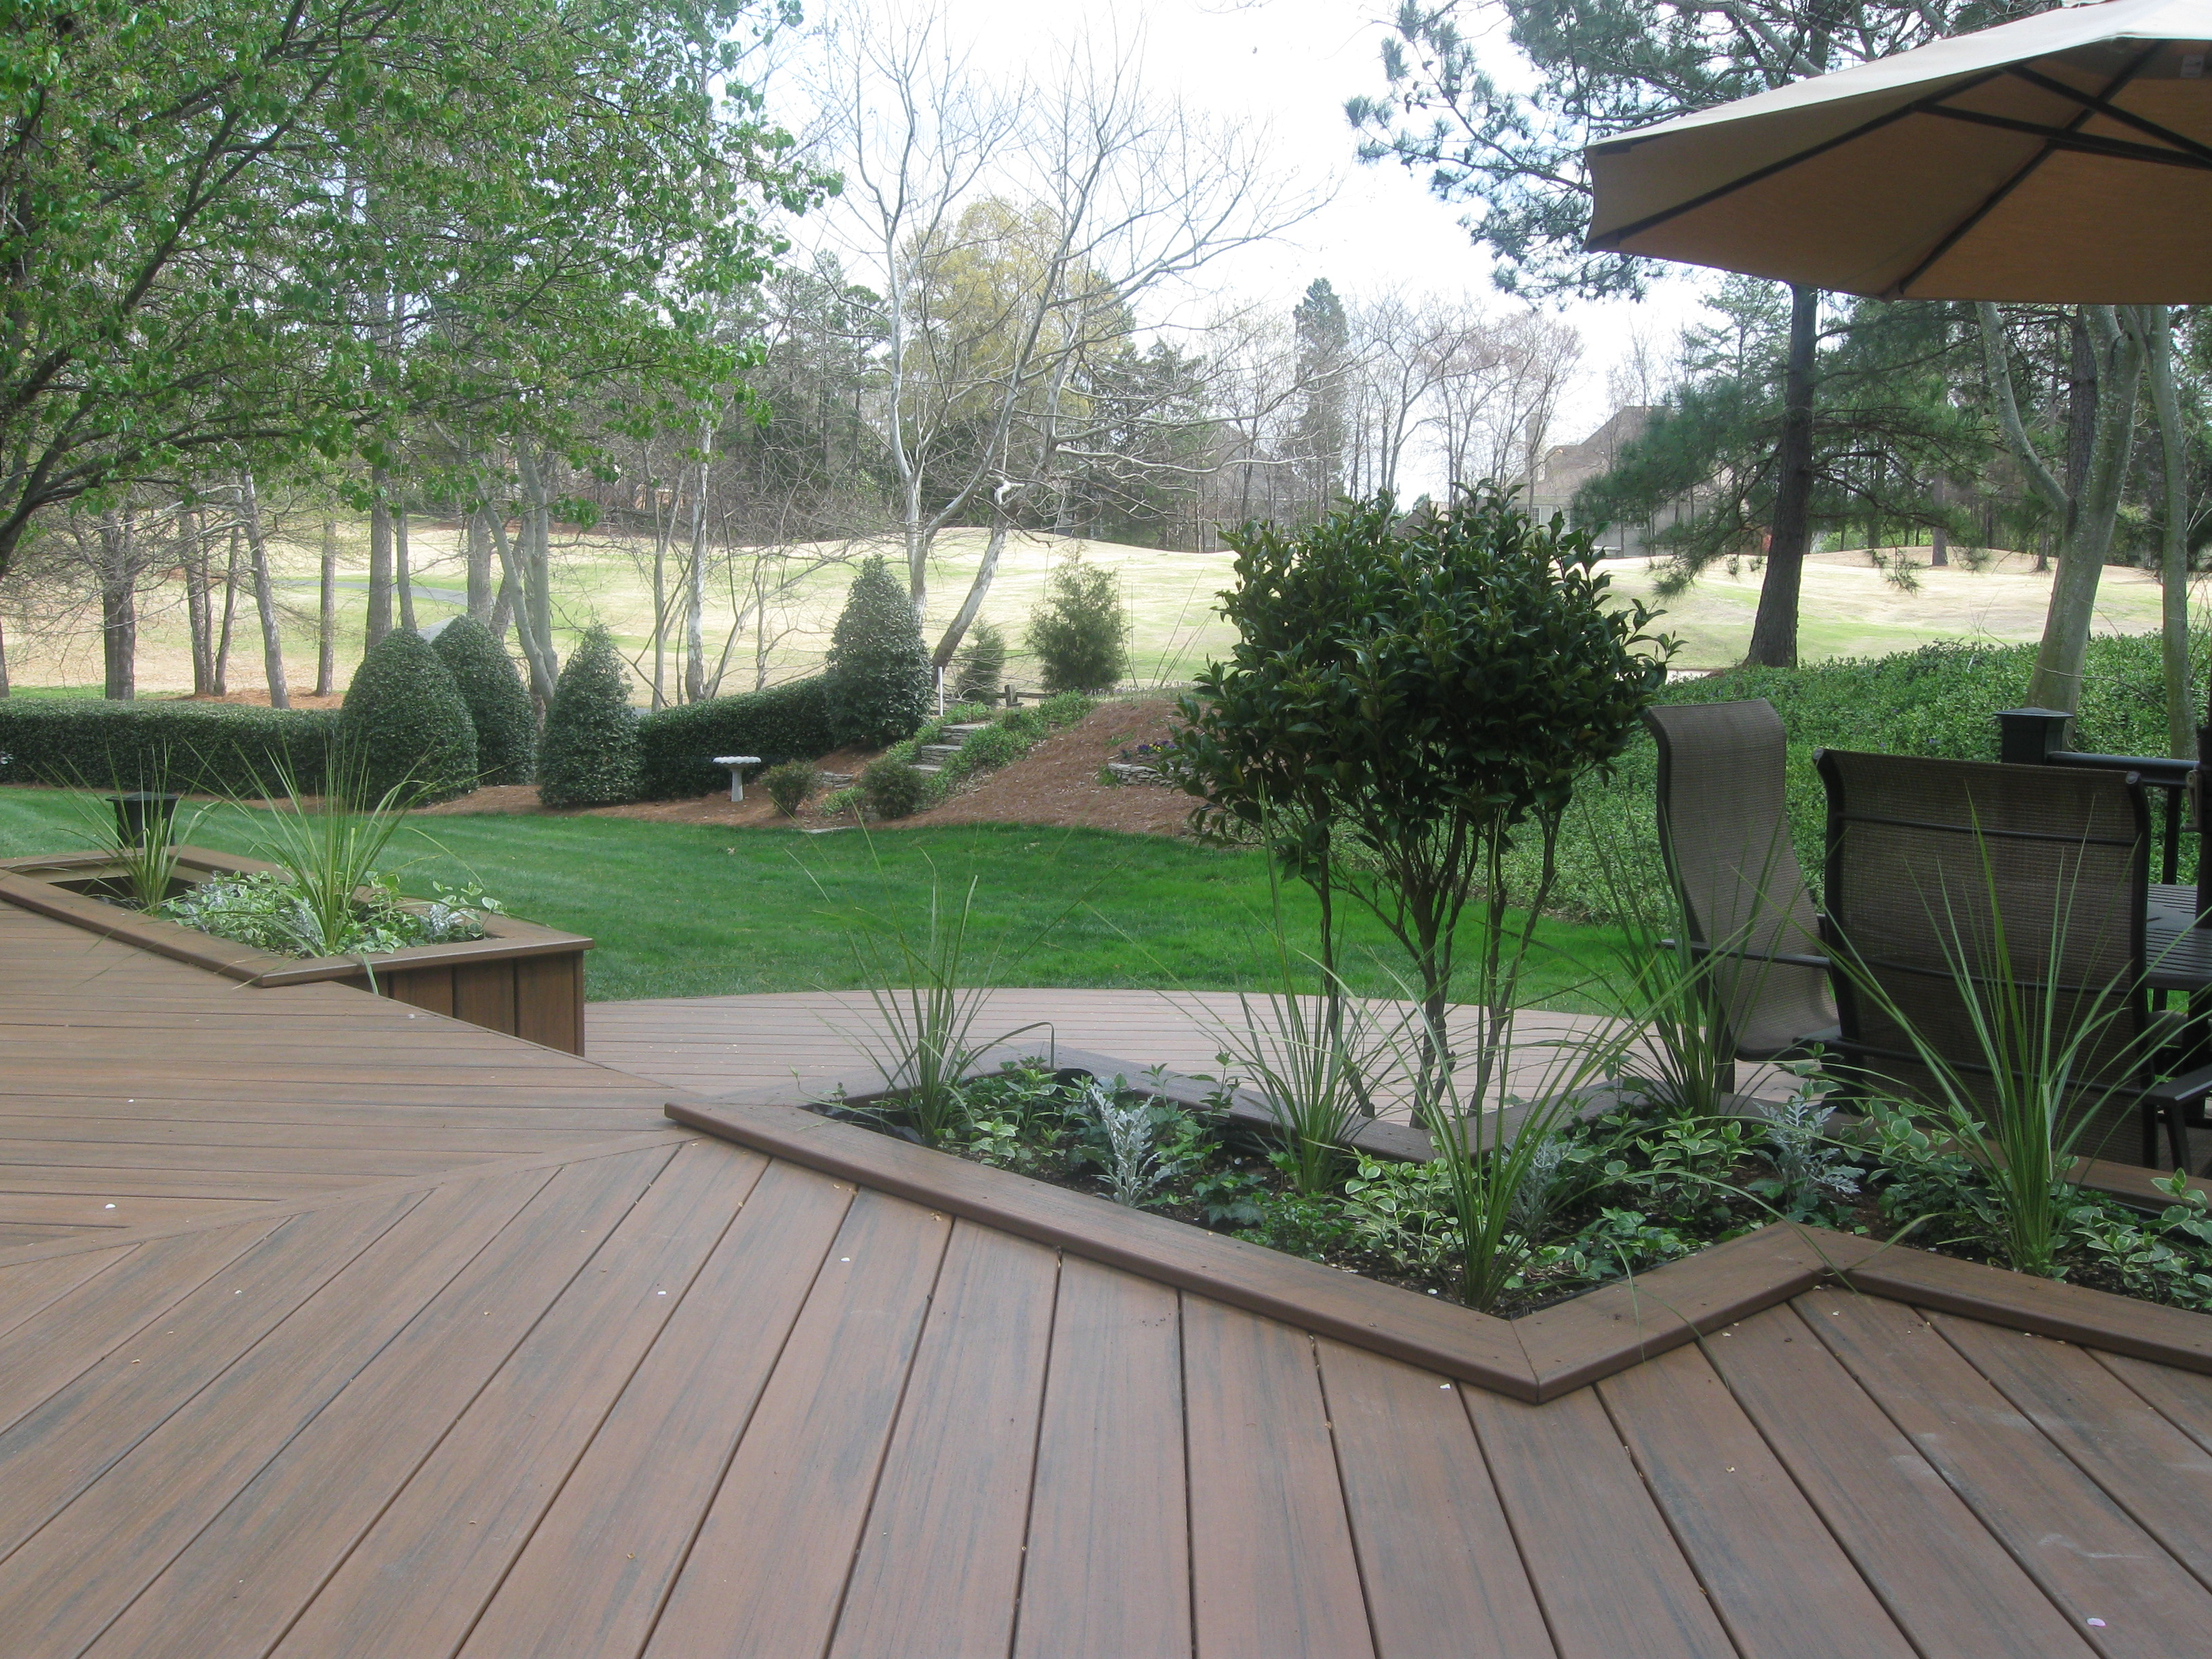 Earthwoods Evolutions With Planters Looking